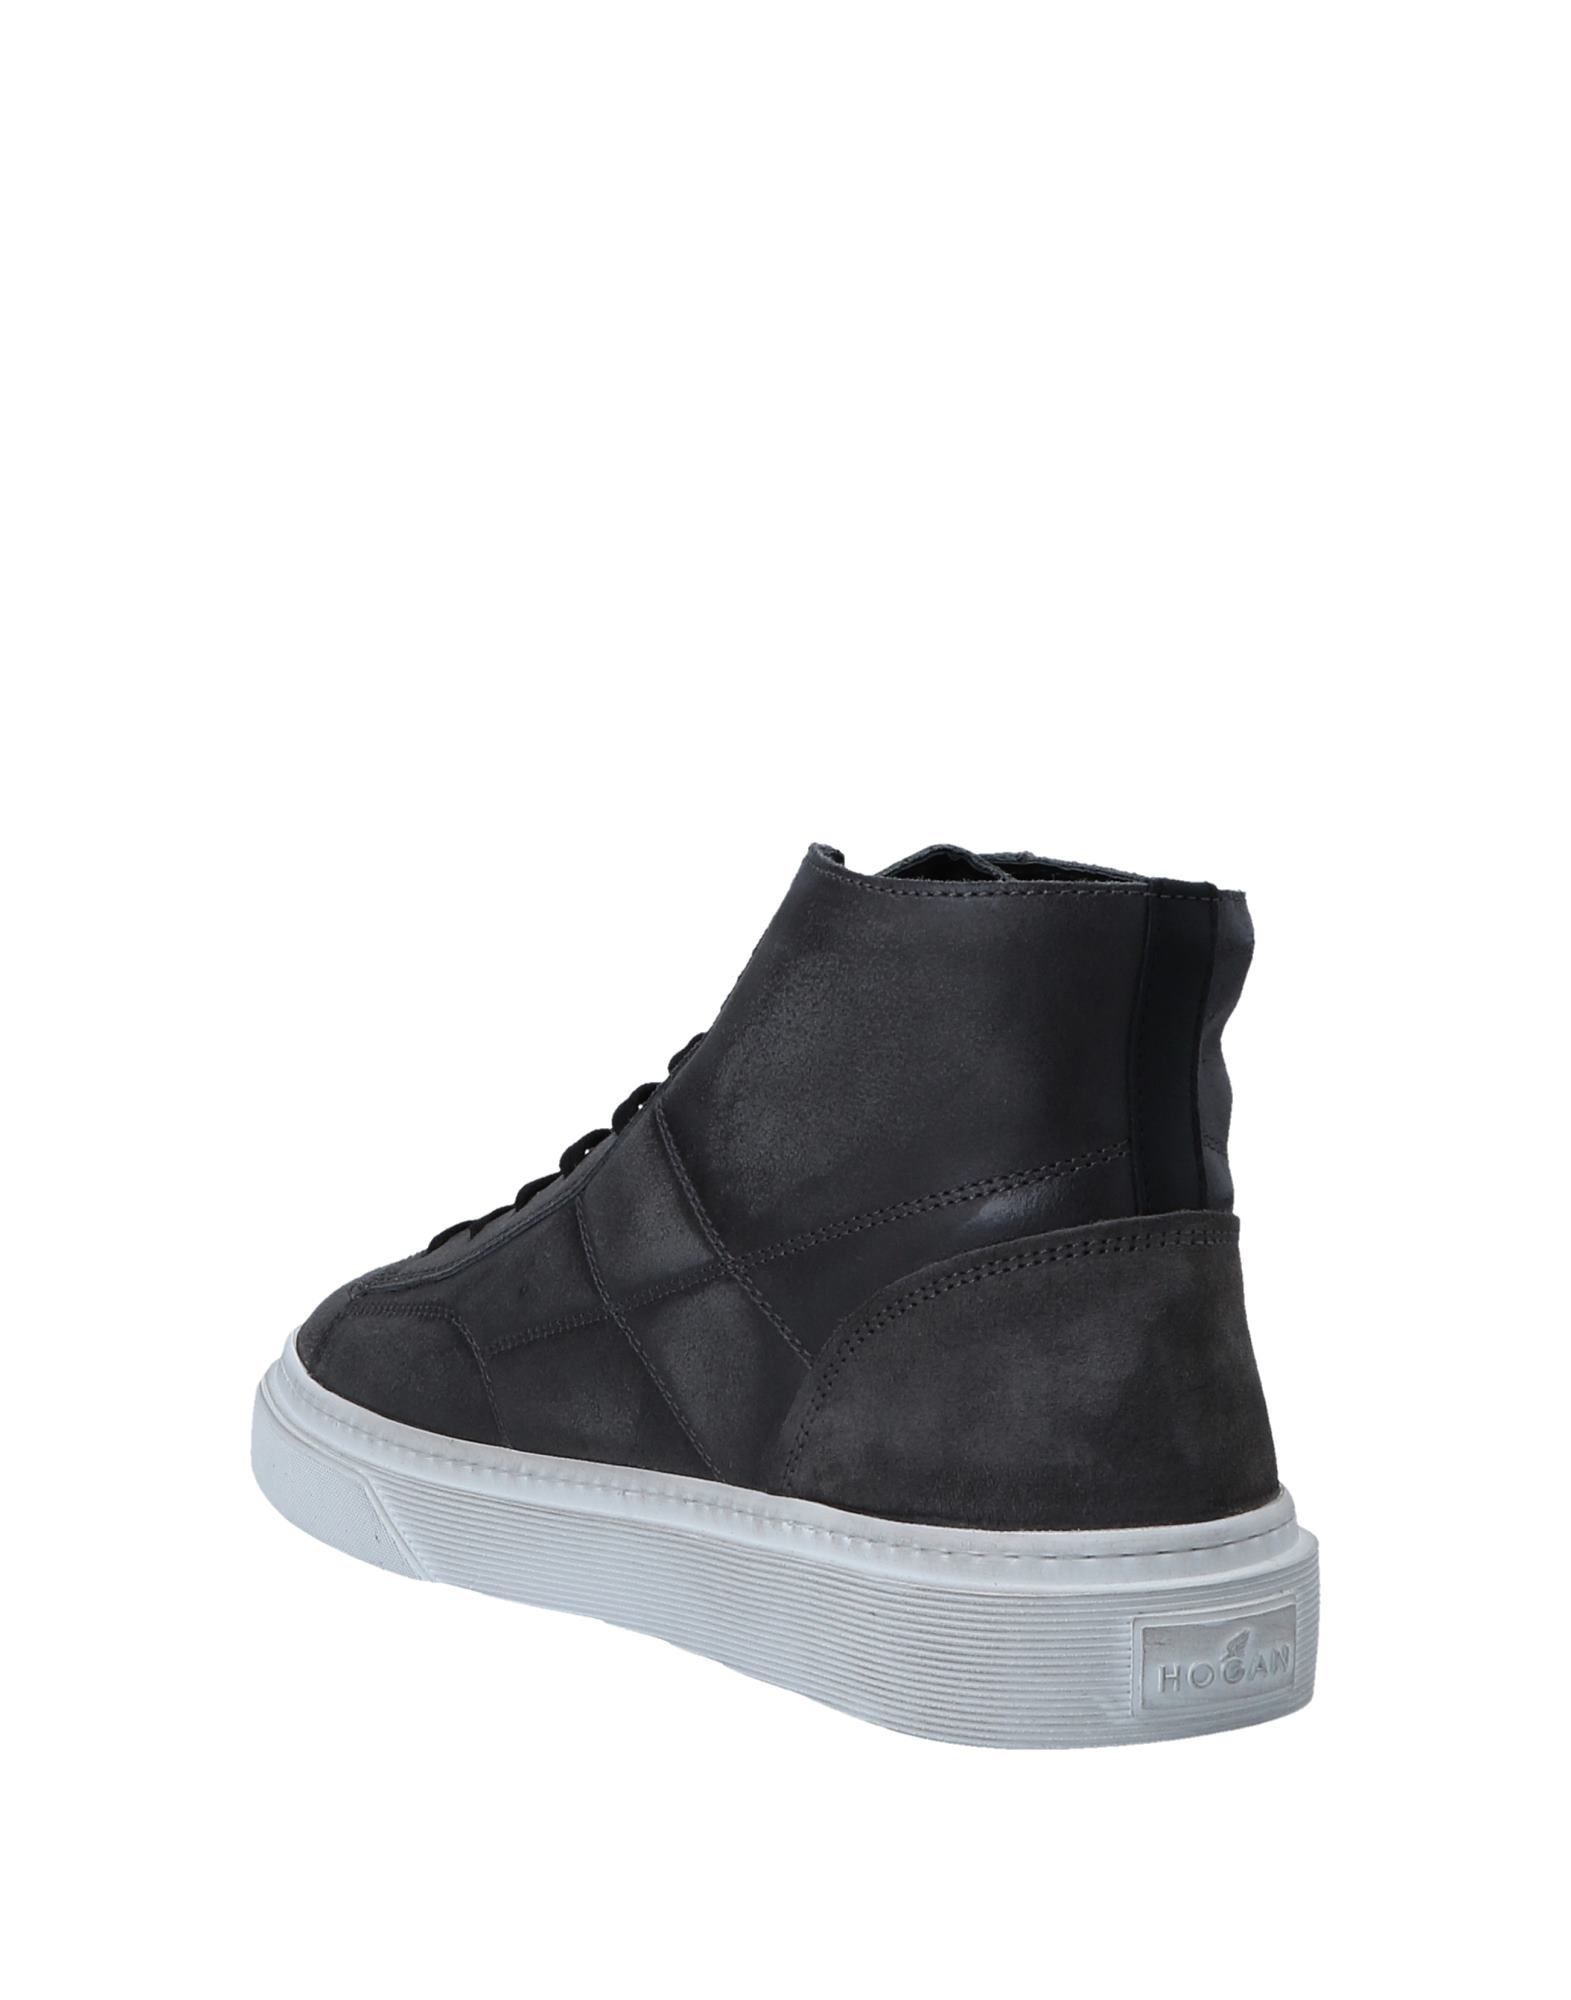 Hogan Steel Grey Leather Sneakers